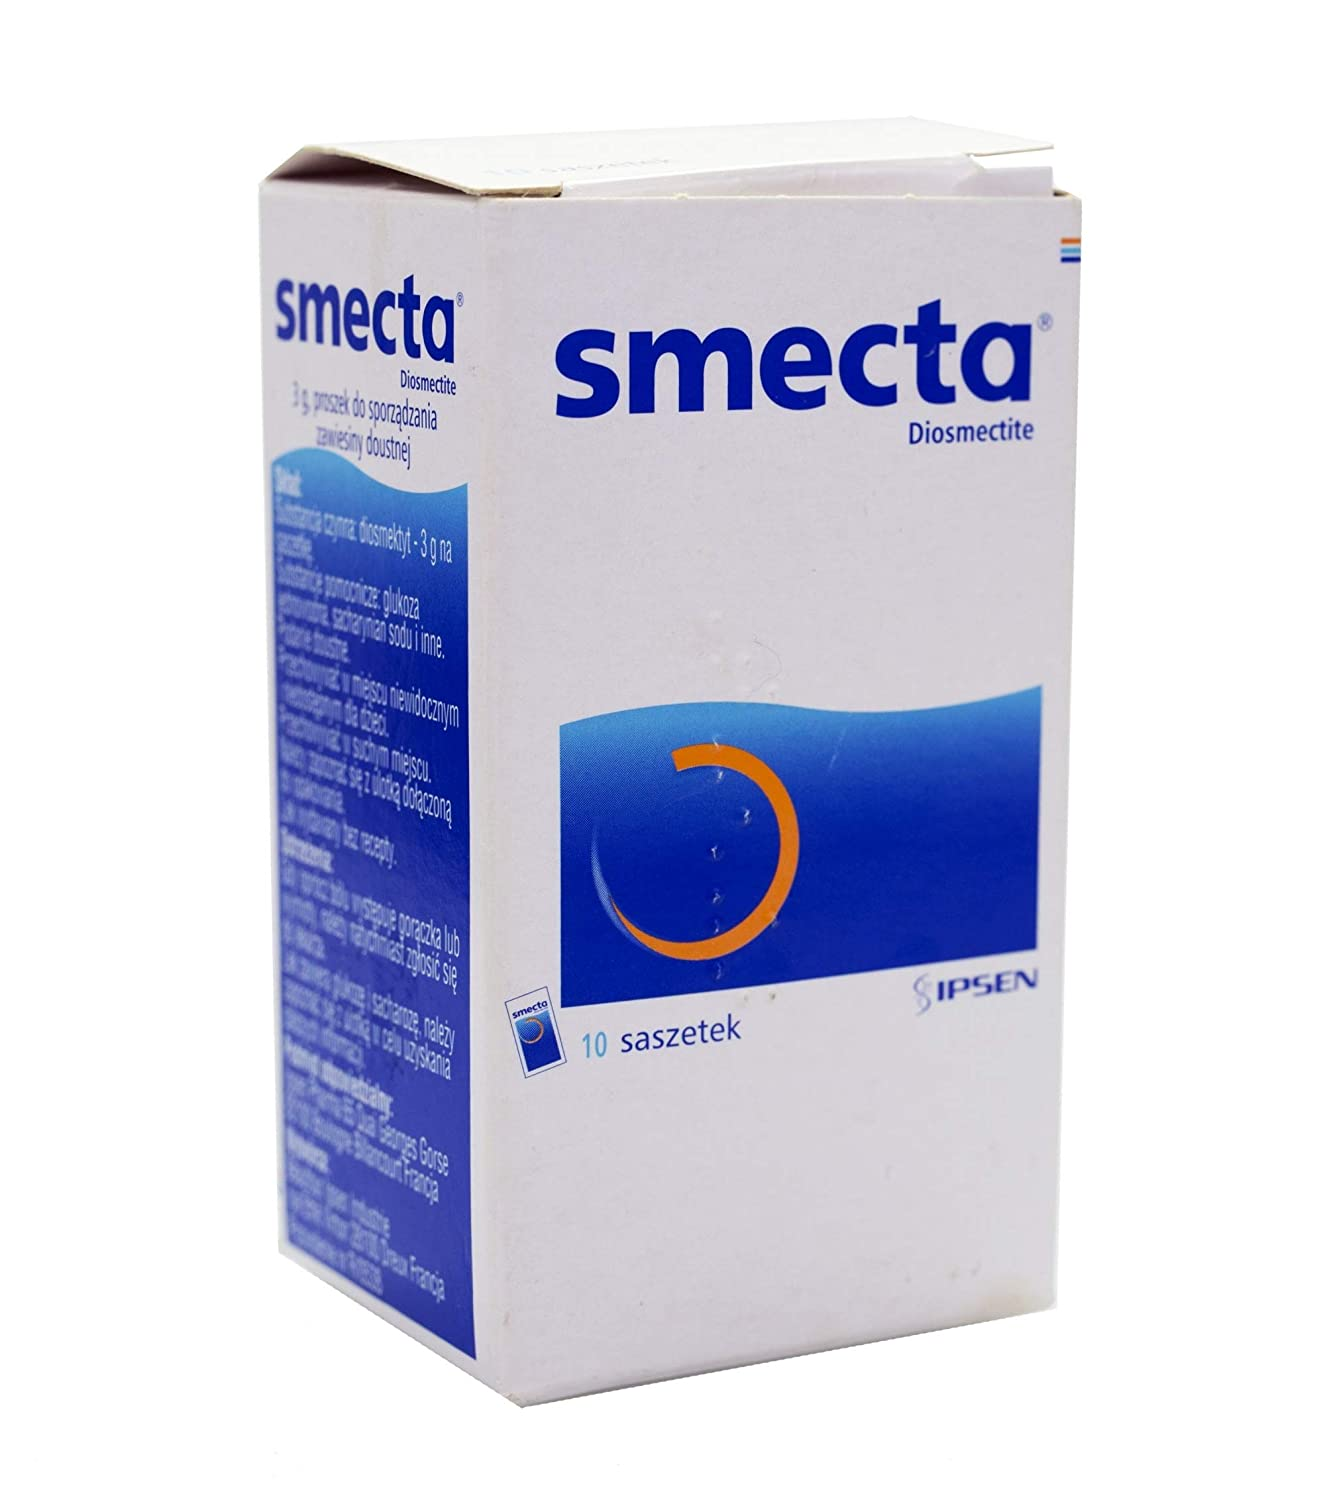 Smecta (Smectite Dioctaedric) 10 bags